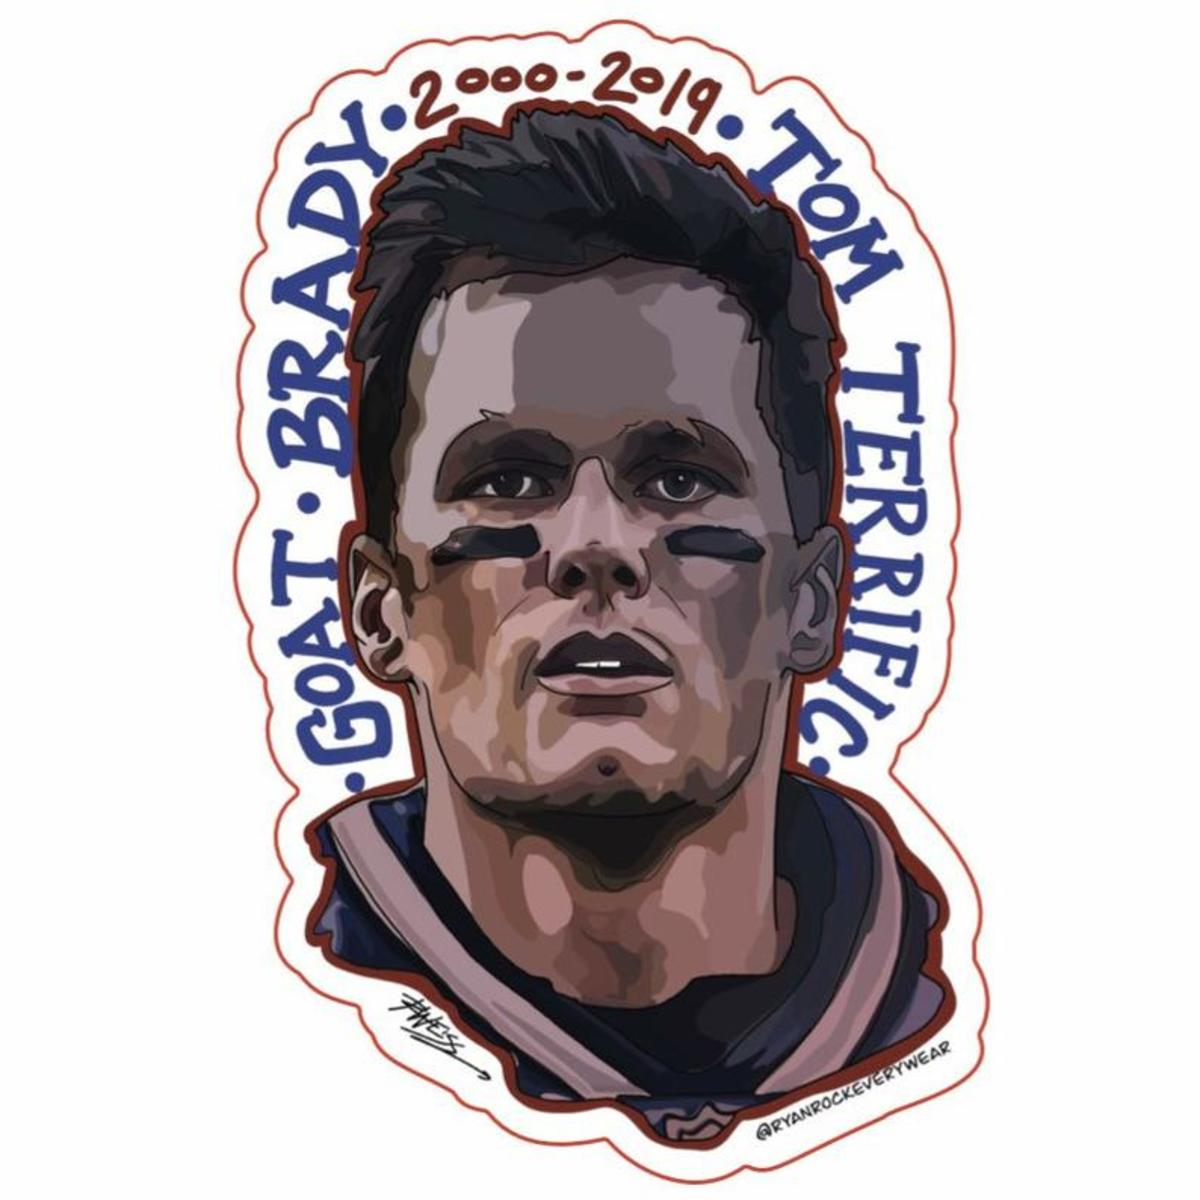 Why Tom Brady Is the Greatest of All Time